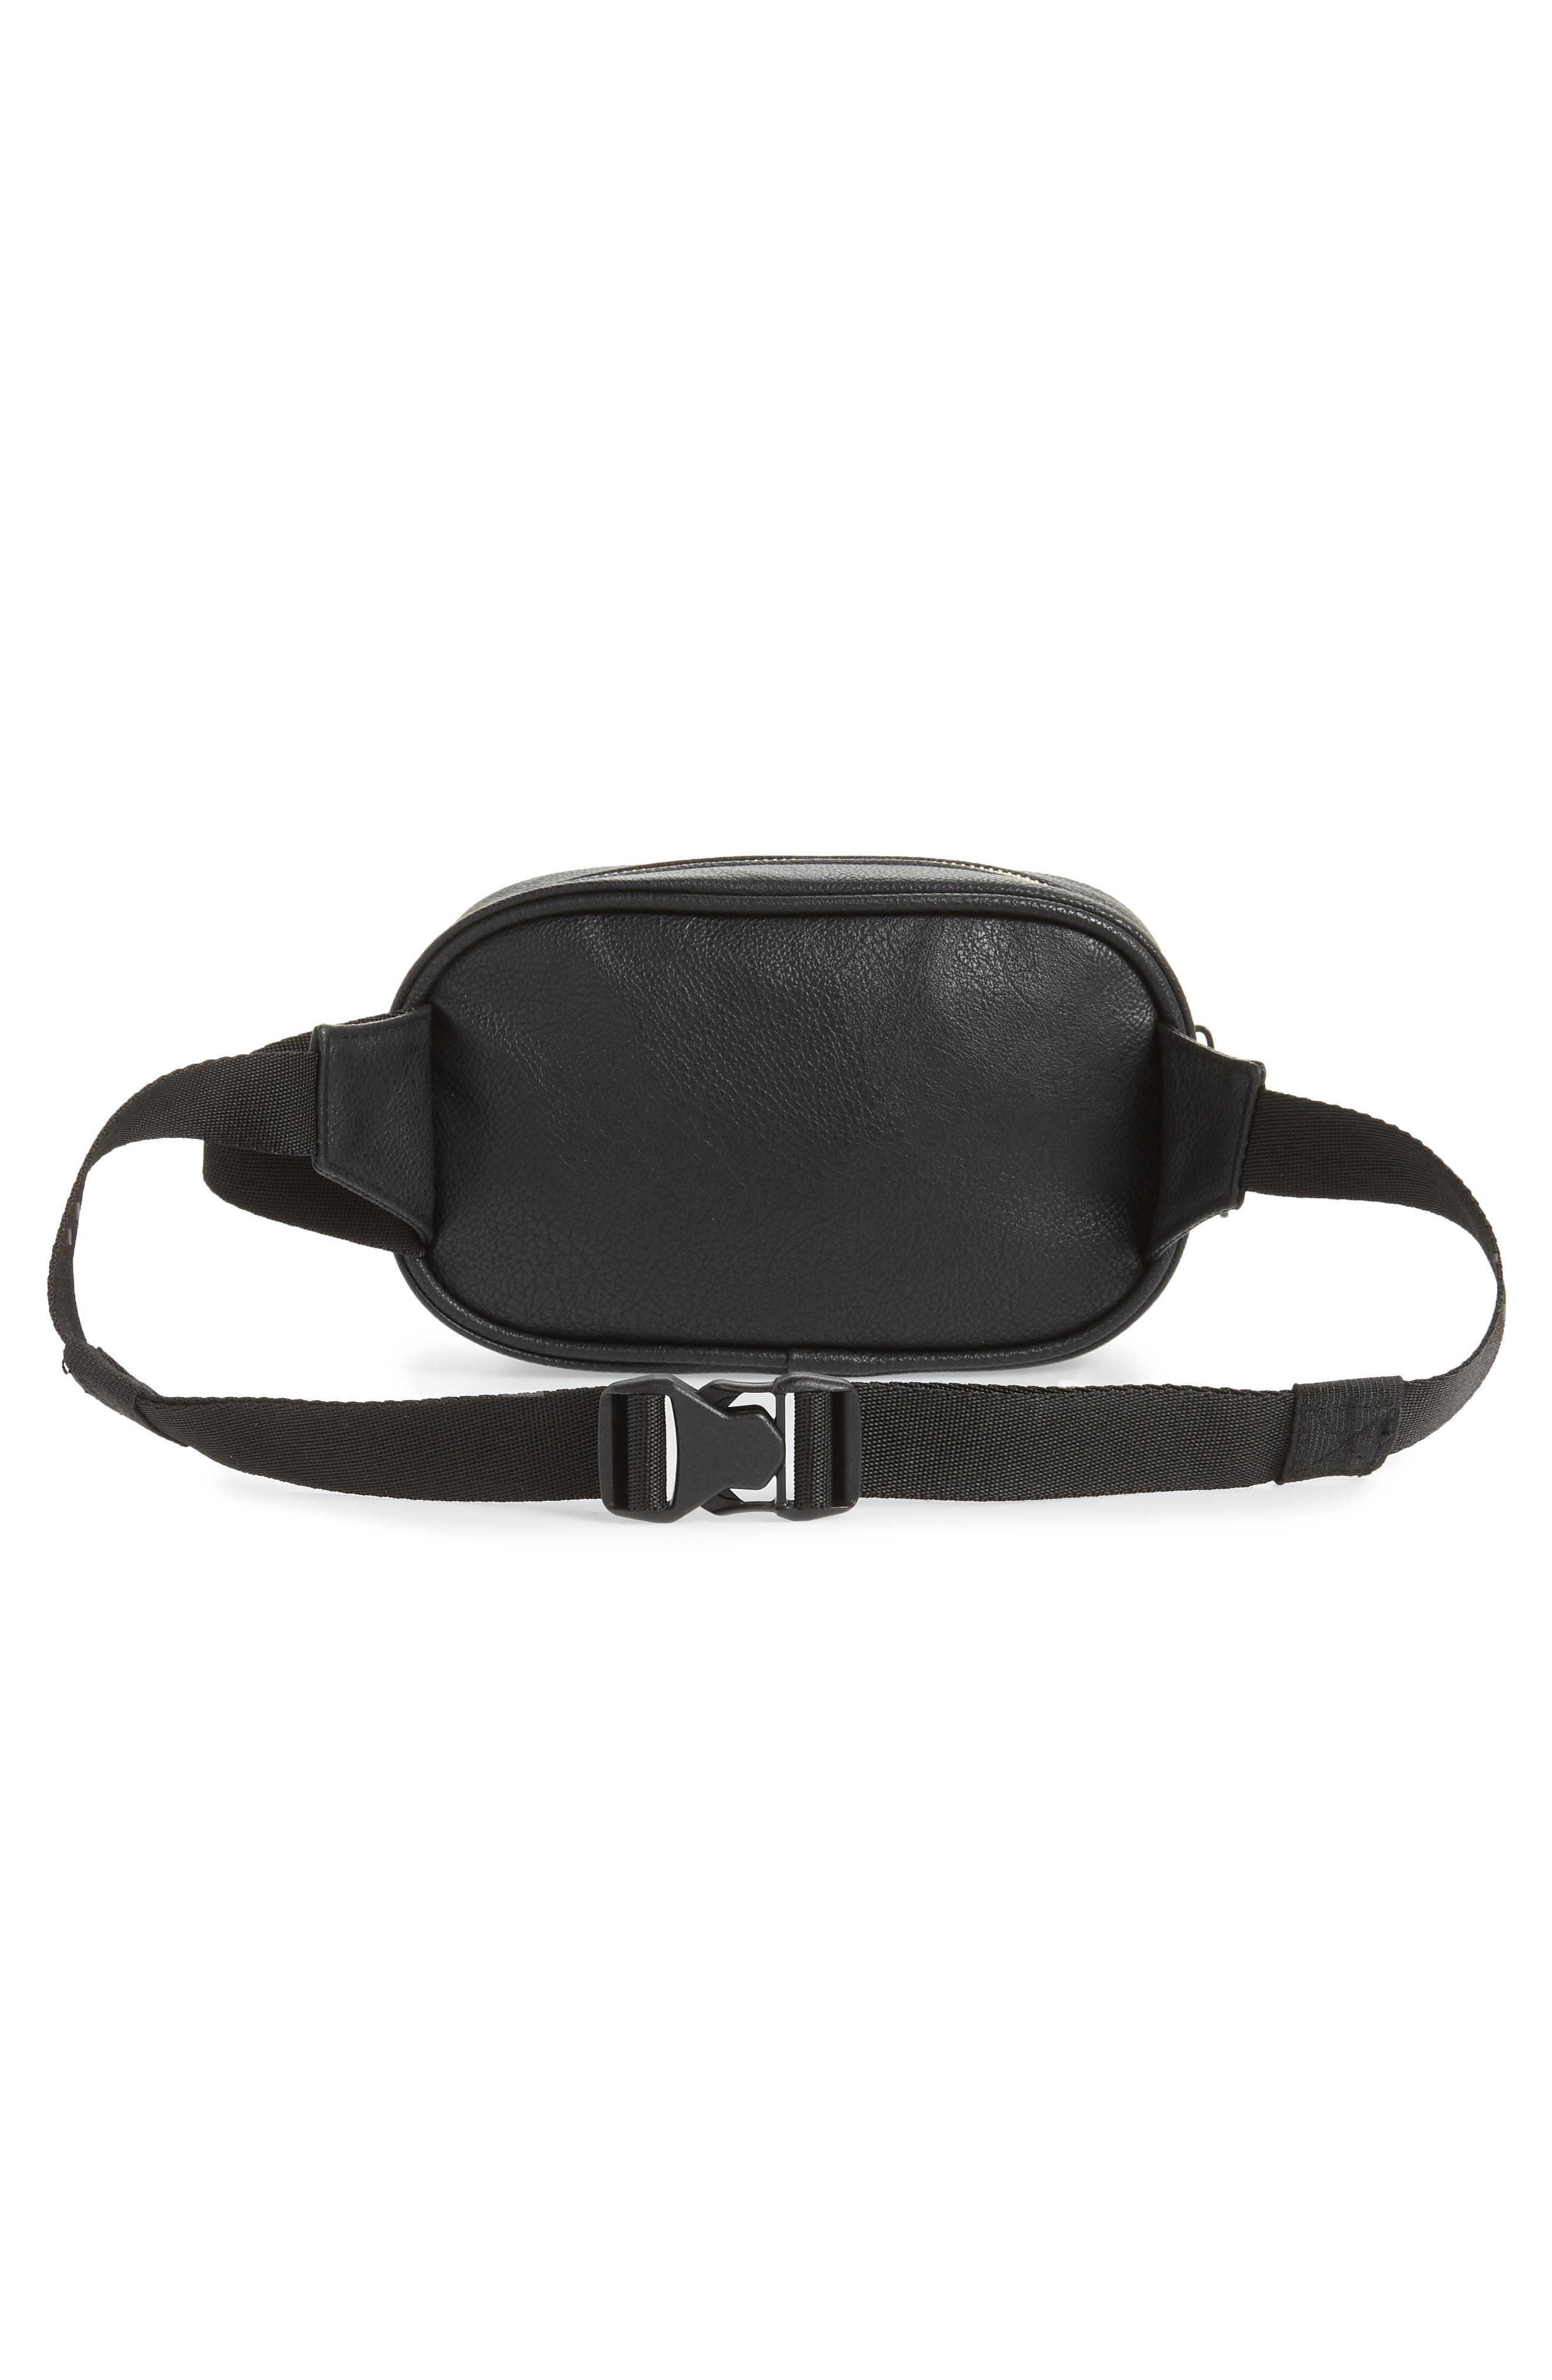 adidas Ori Faux Leather Fanny Pack,                             Alternate thumbnail 4, color,                             001